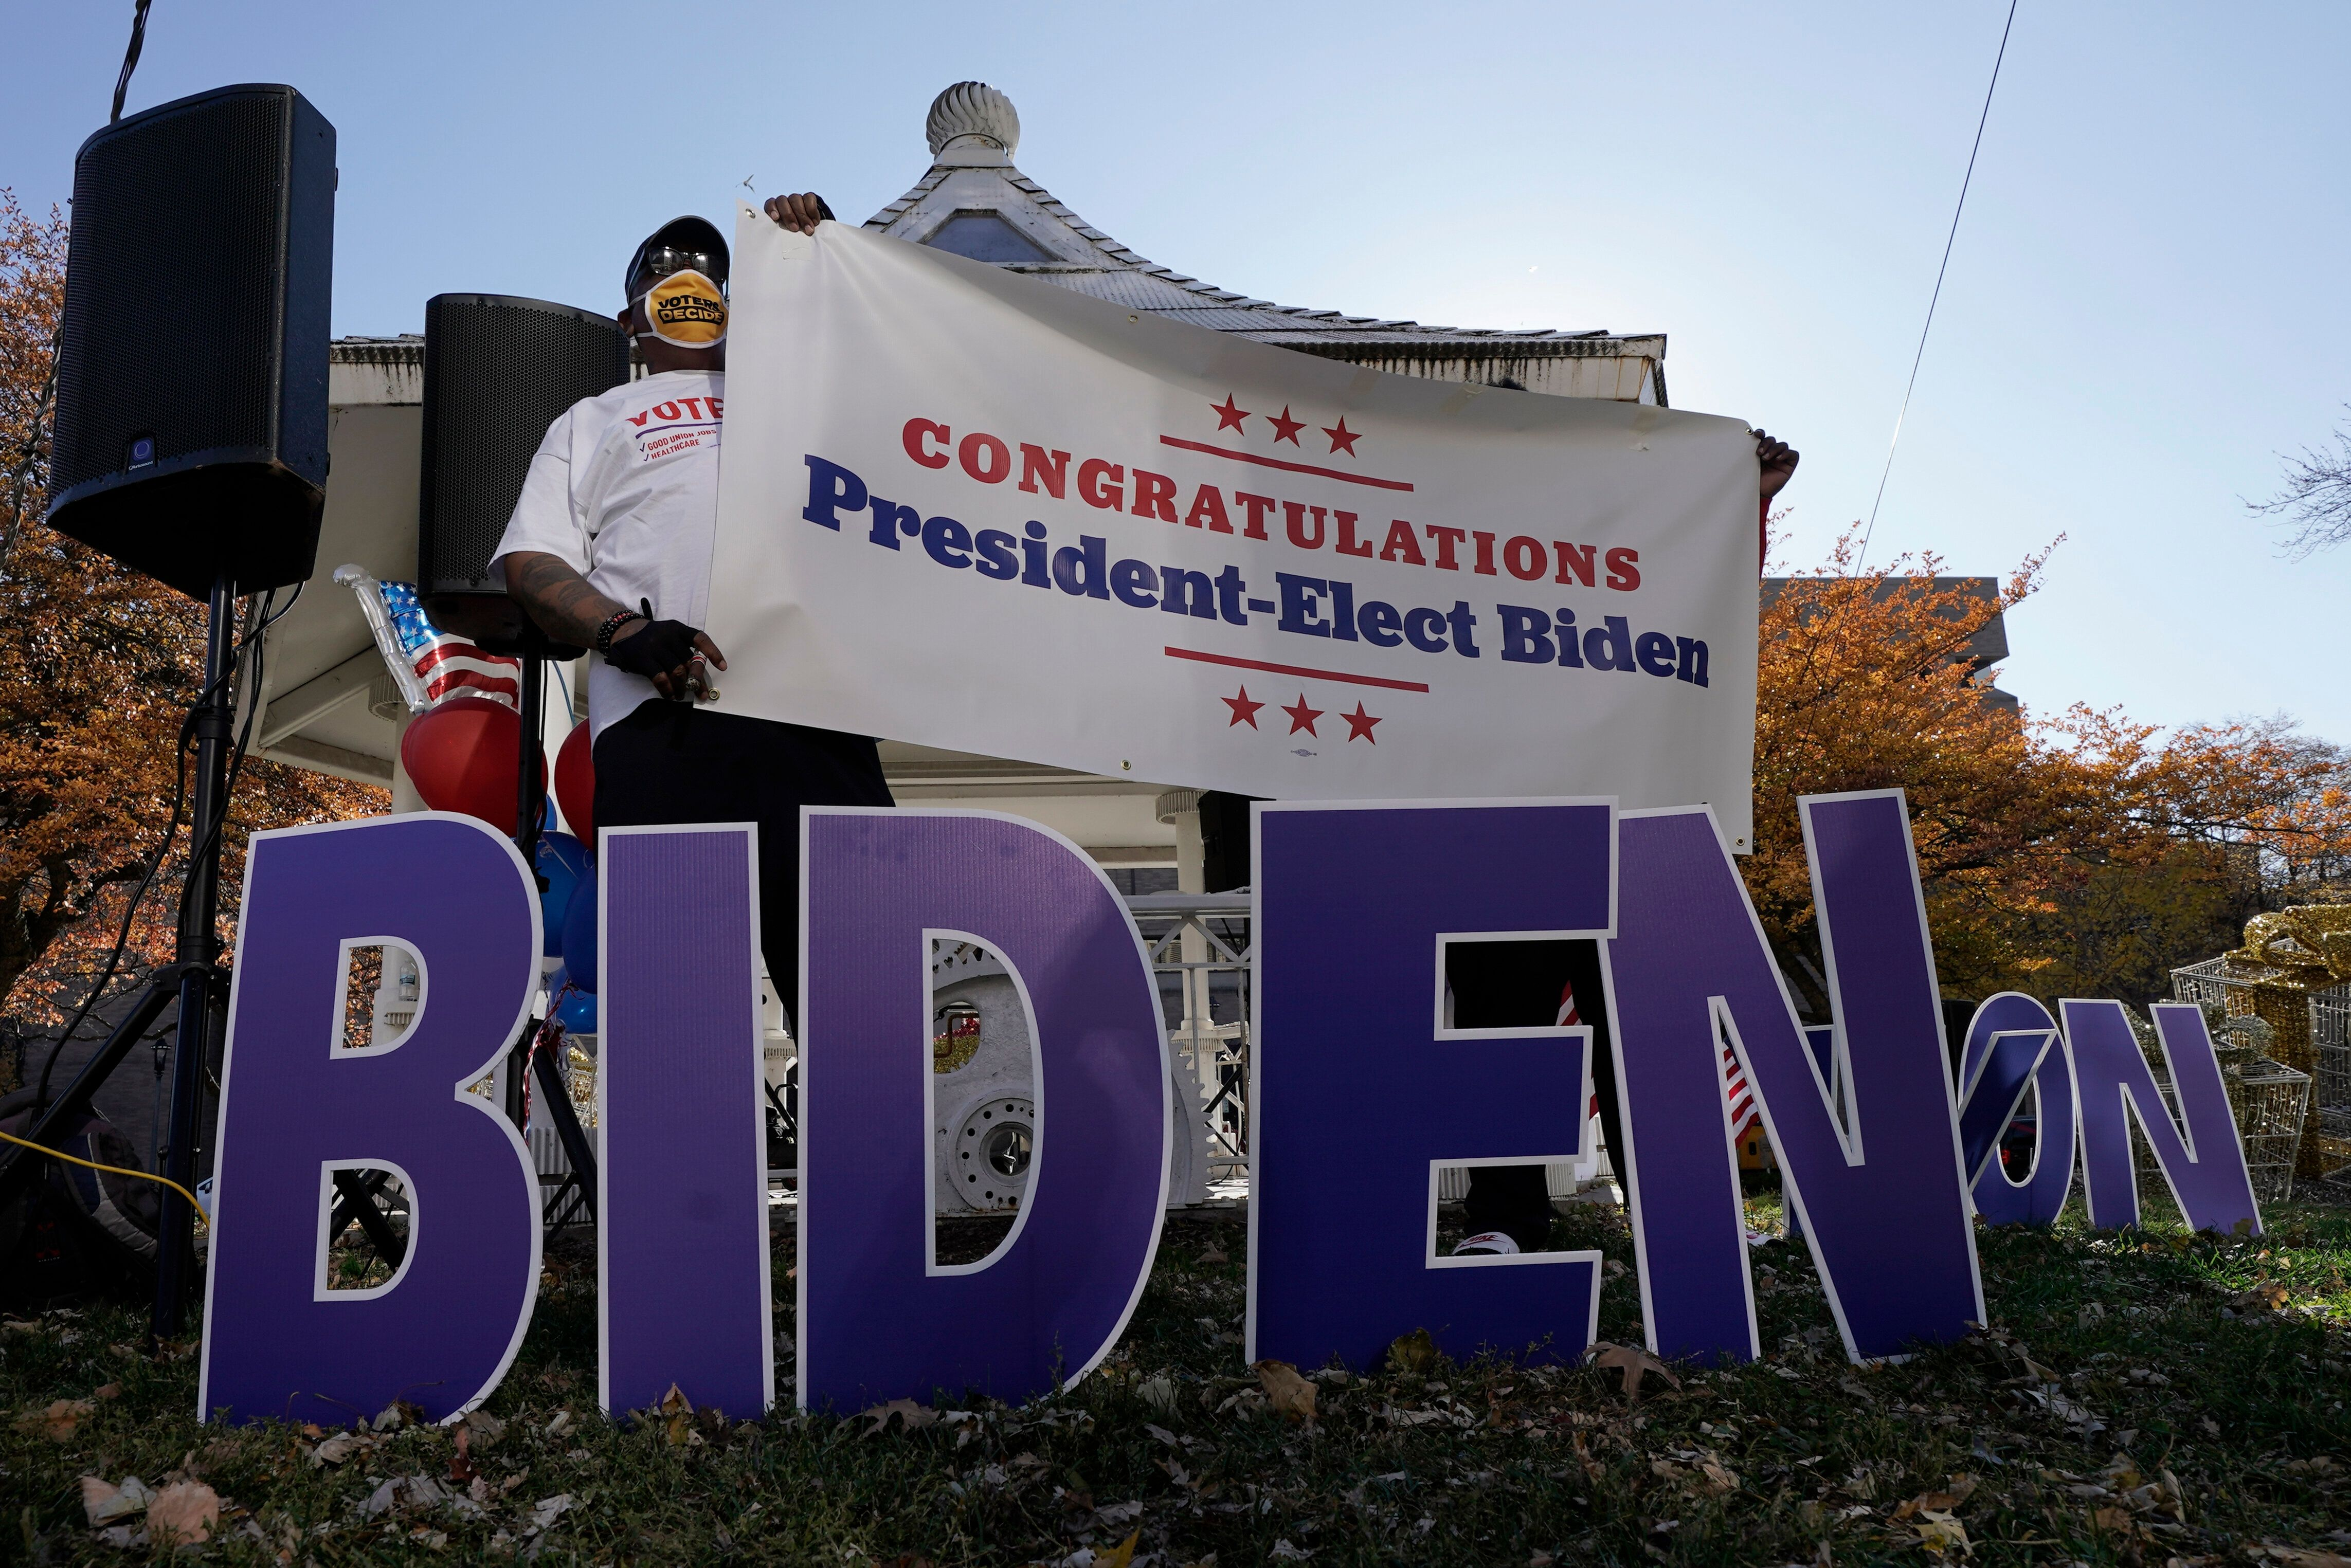 Joe Biden supporters in Milwaukee react to the announcement on Nov. 7 that Biden defeated Trump in the presidential election.